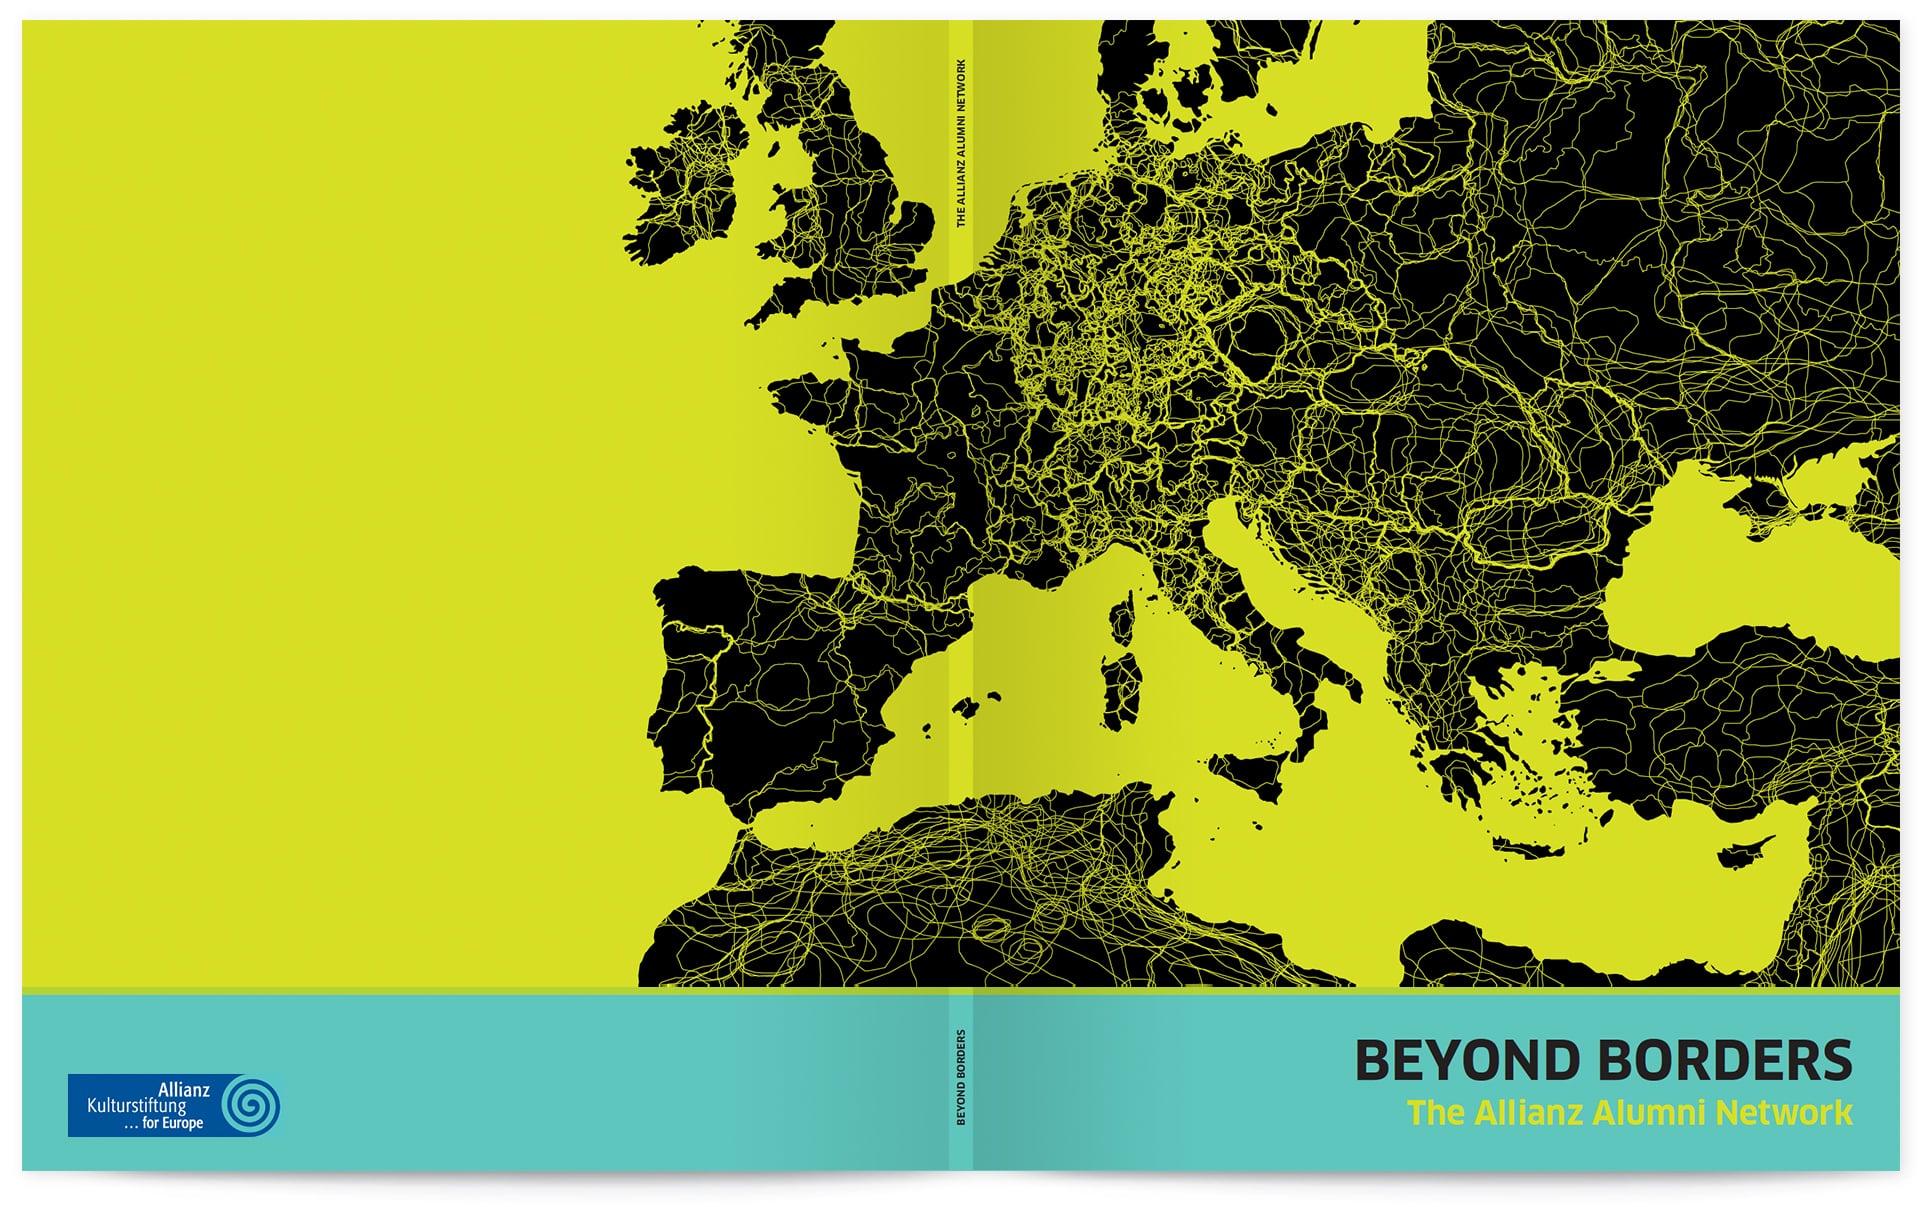 Beyond Borders – Magazin der Allianz Kulturstiftung, Titel